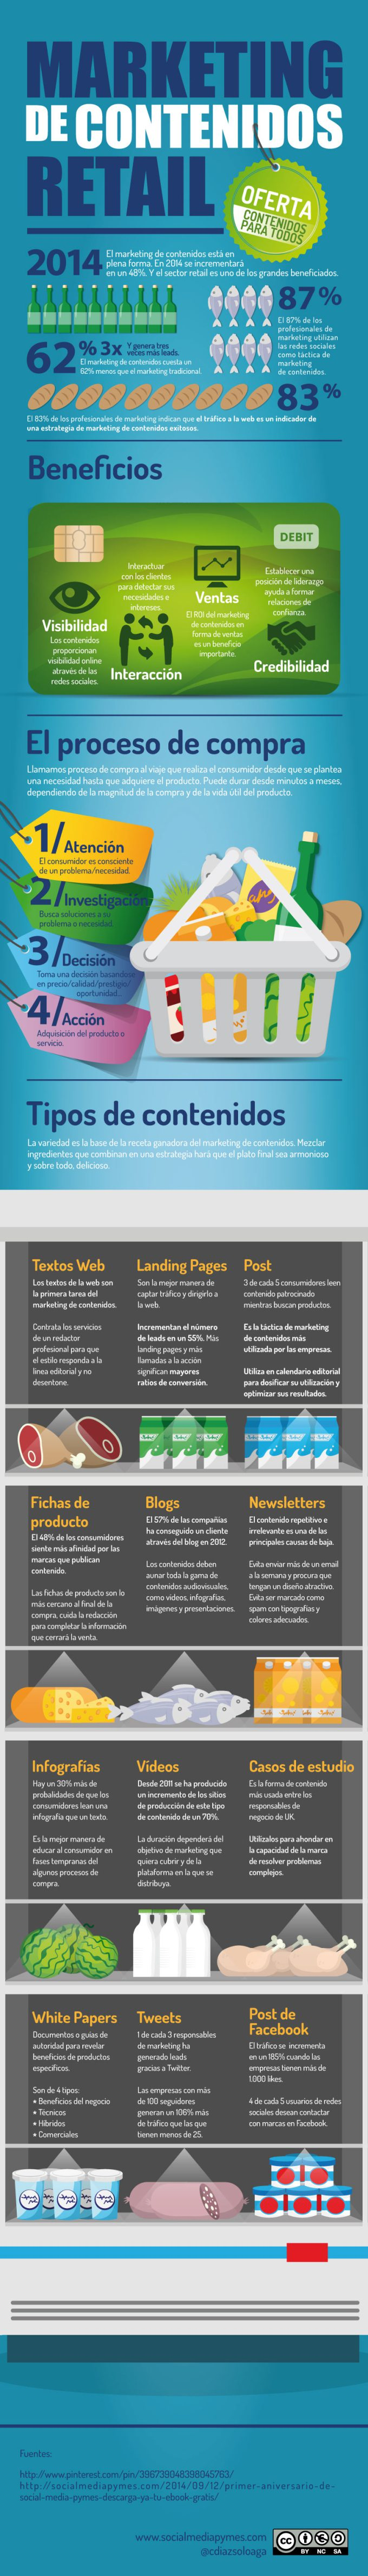 Marketing de contenidos para el sector retail